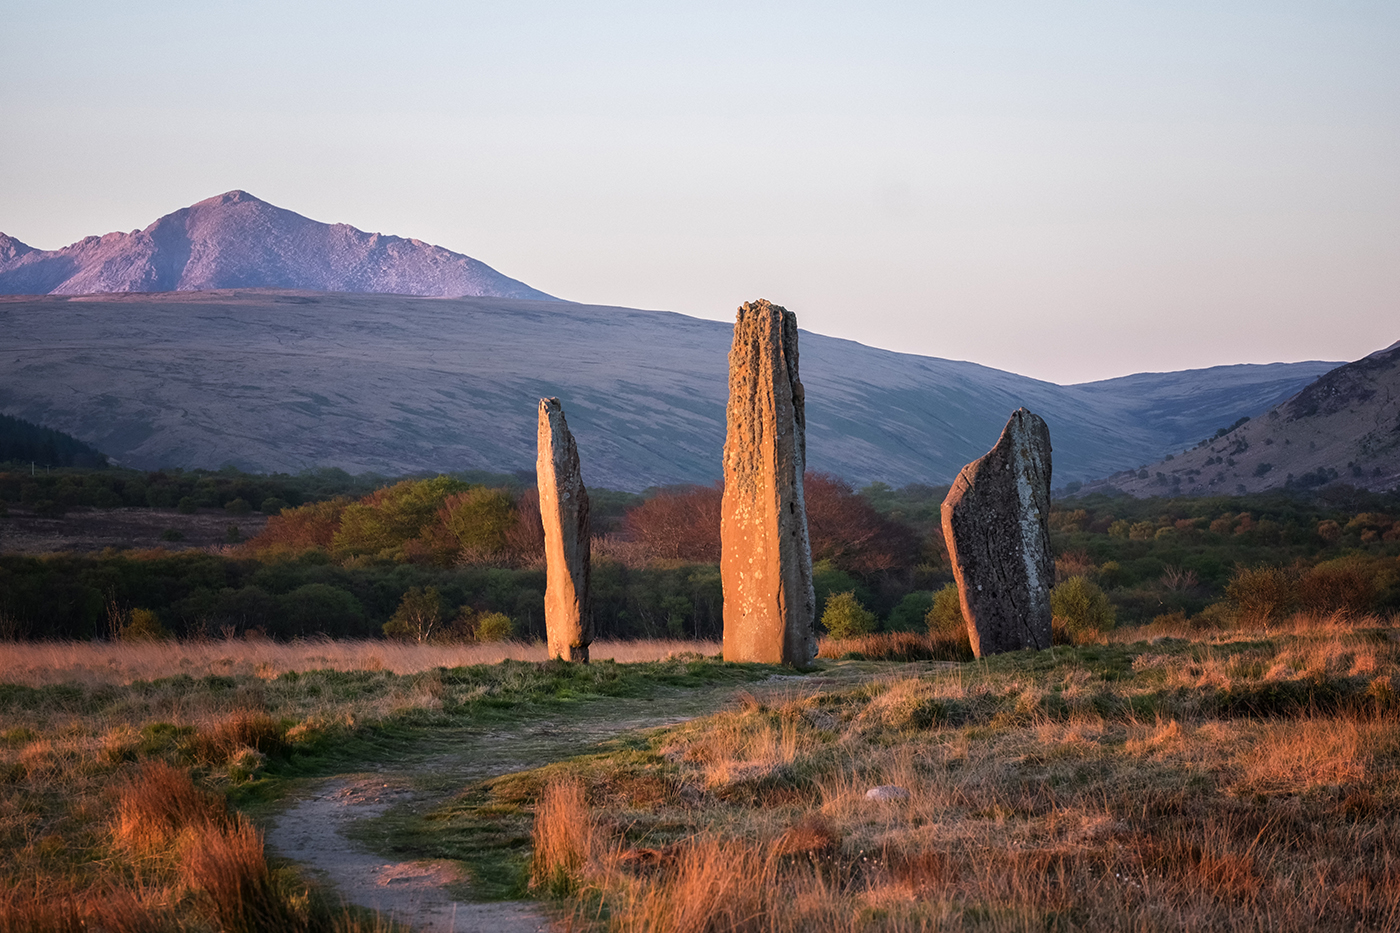 Ancient standing stones on the Isle of Arran, with Goat Fell mountain in the distance